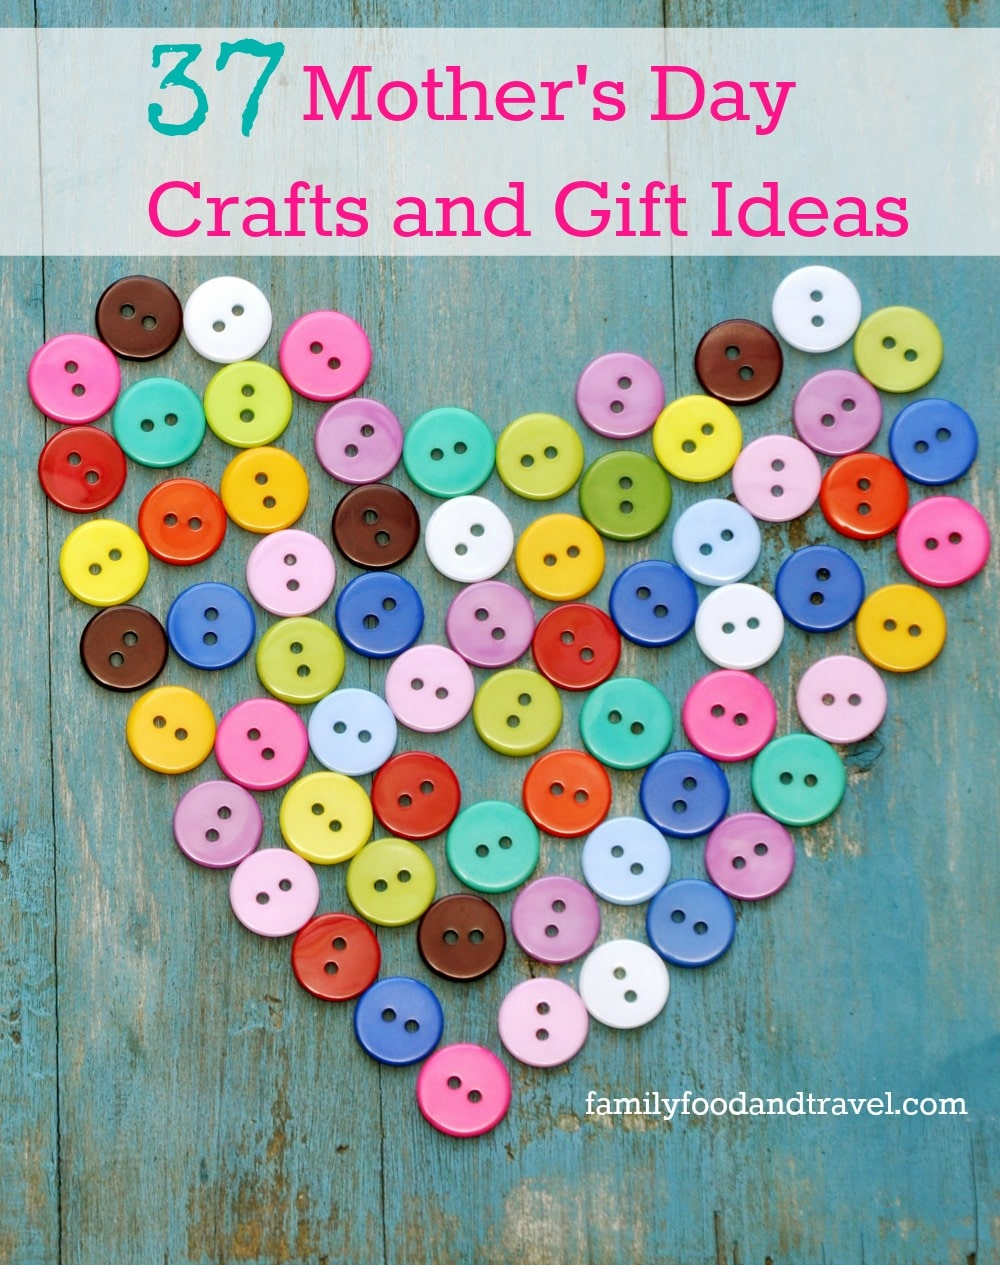 37 mothers day crafts and gift ideas family food and travel for Craft ideas for mom